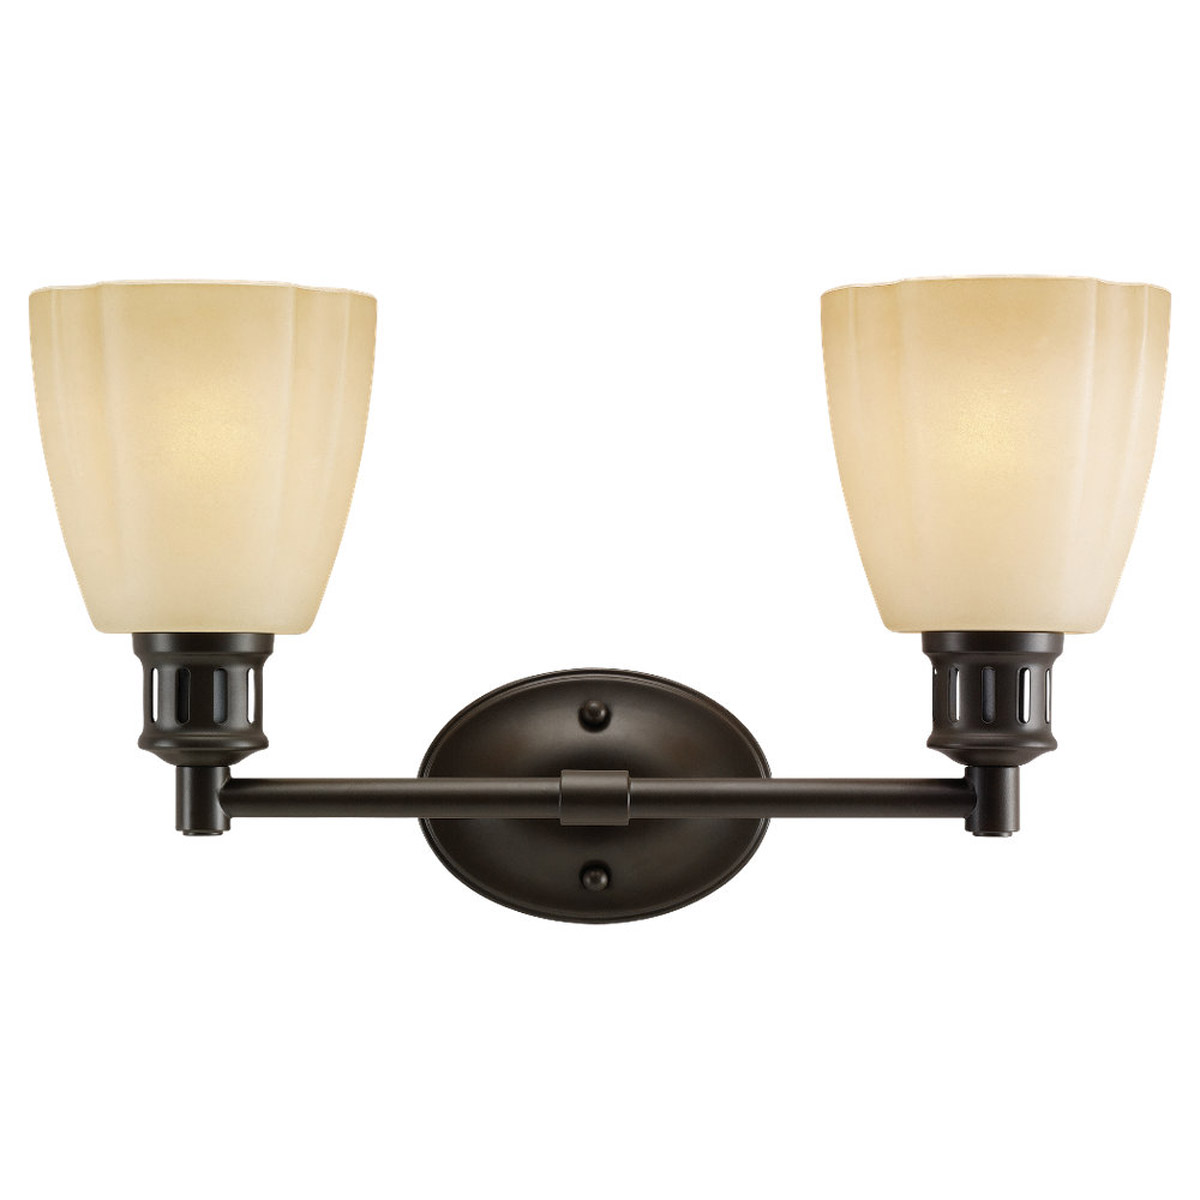 Sea Gull Lighting Century 2 Light Bath Vanity in Heirloom Bronze 44474-782